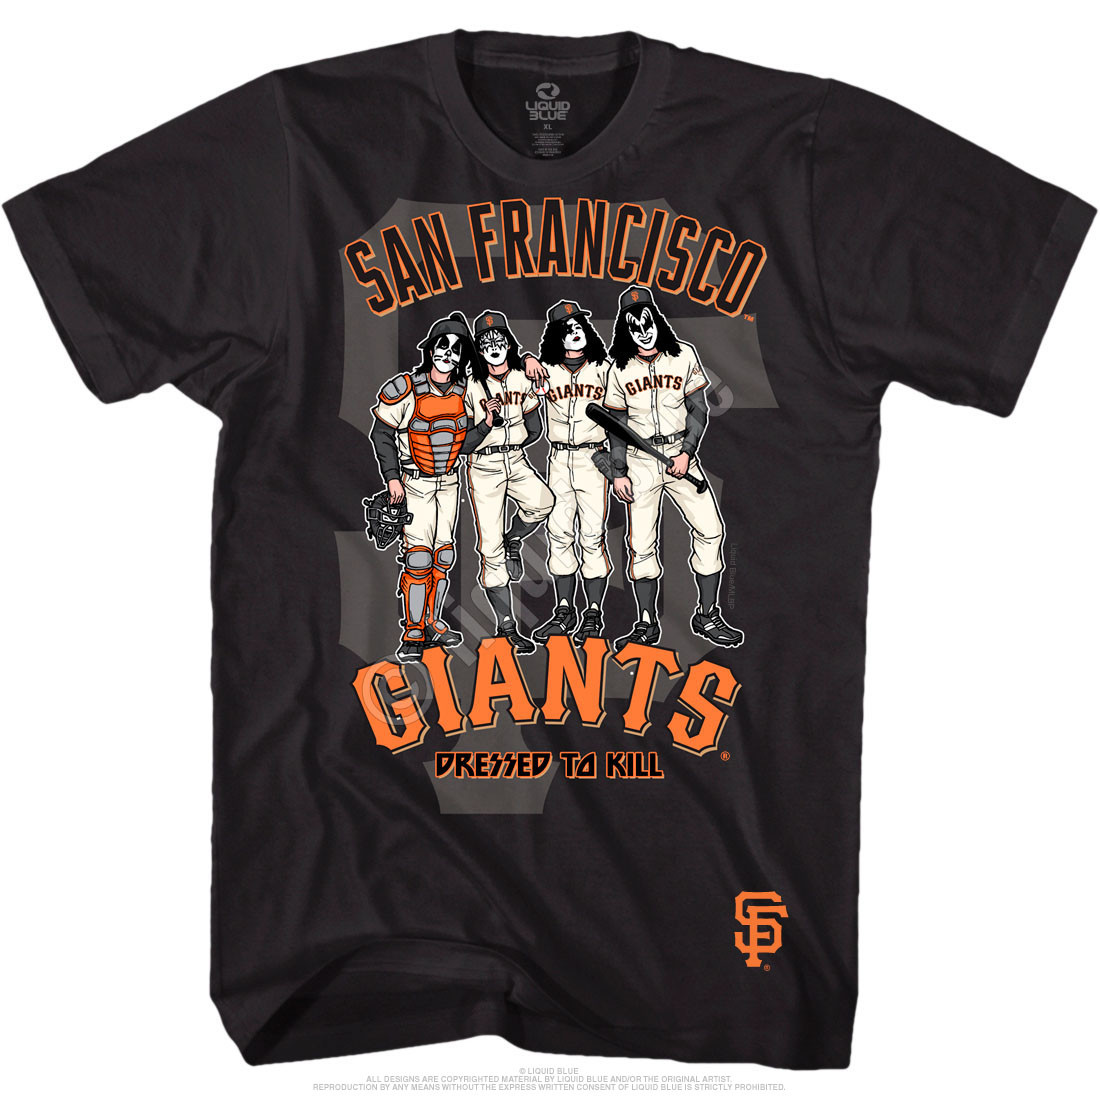 San Francisco Giants Dressed to Kill Black T-Shirt